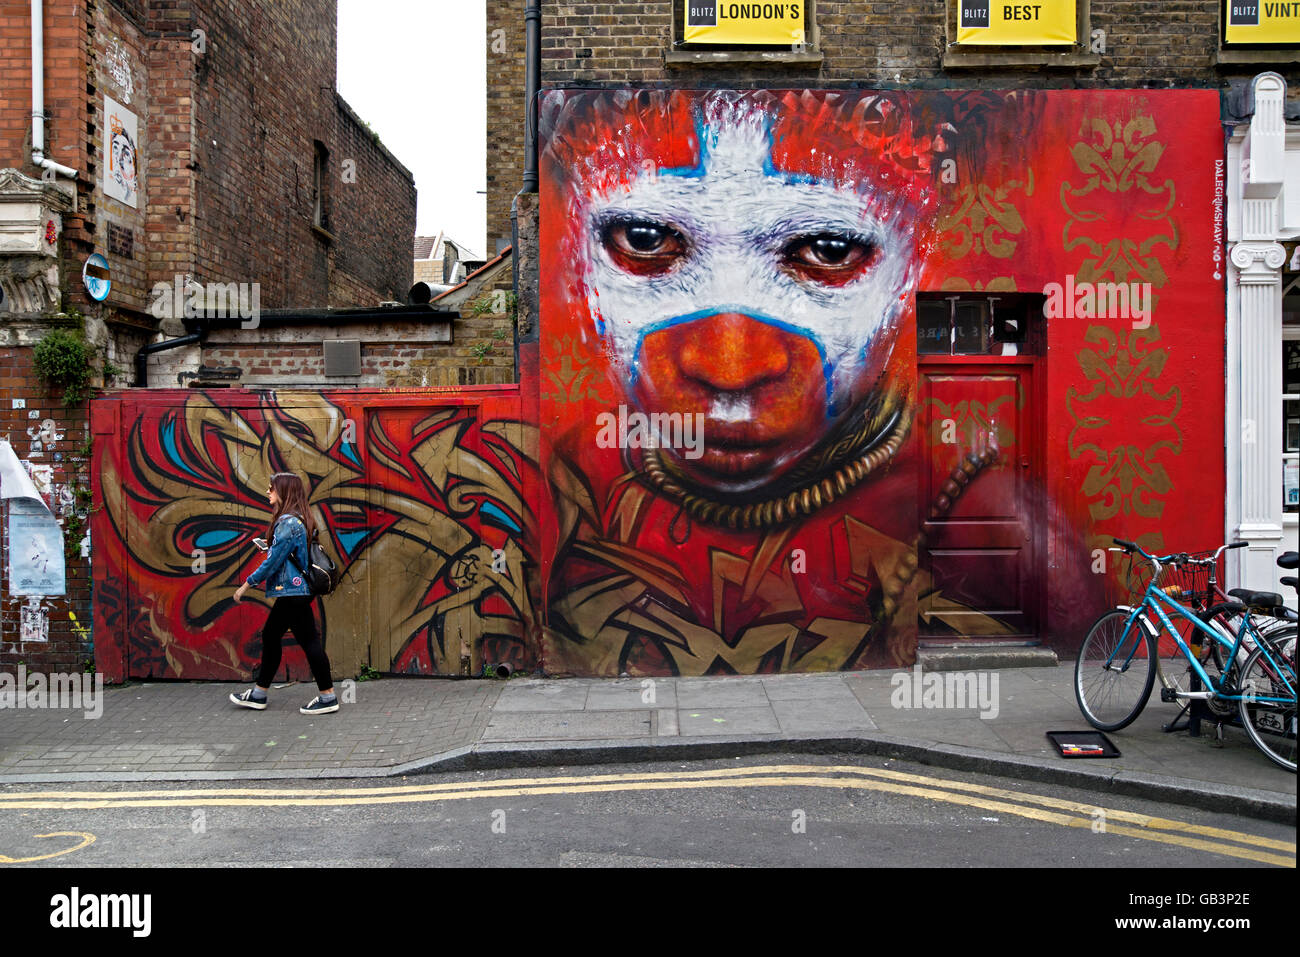 A young woman walks by a piece of street art by Dale Grimshaw in Hanbury Street, just off Brick Lane, London. Stock Photo